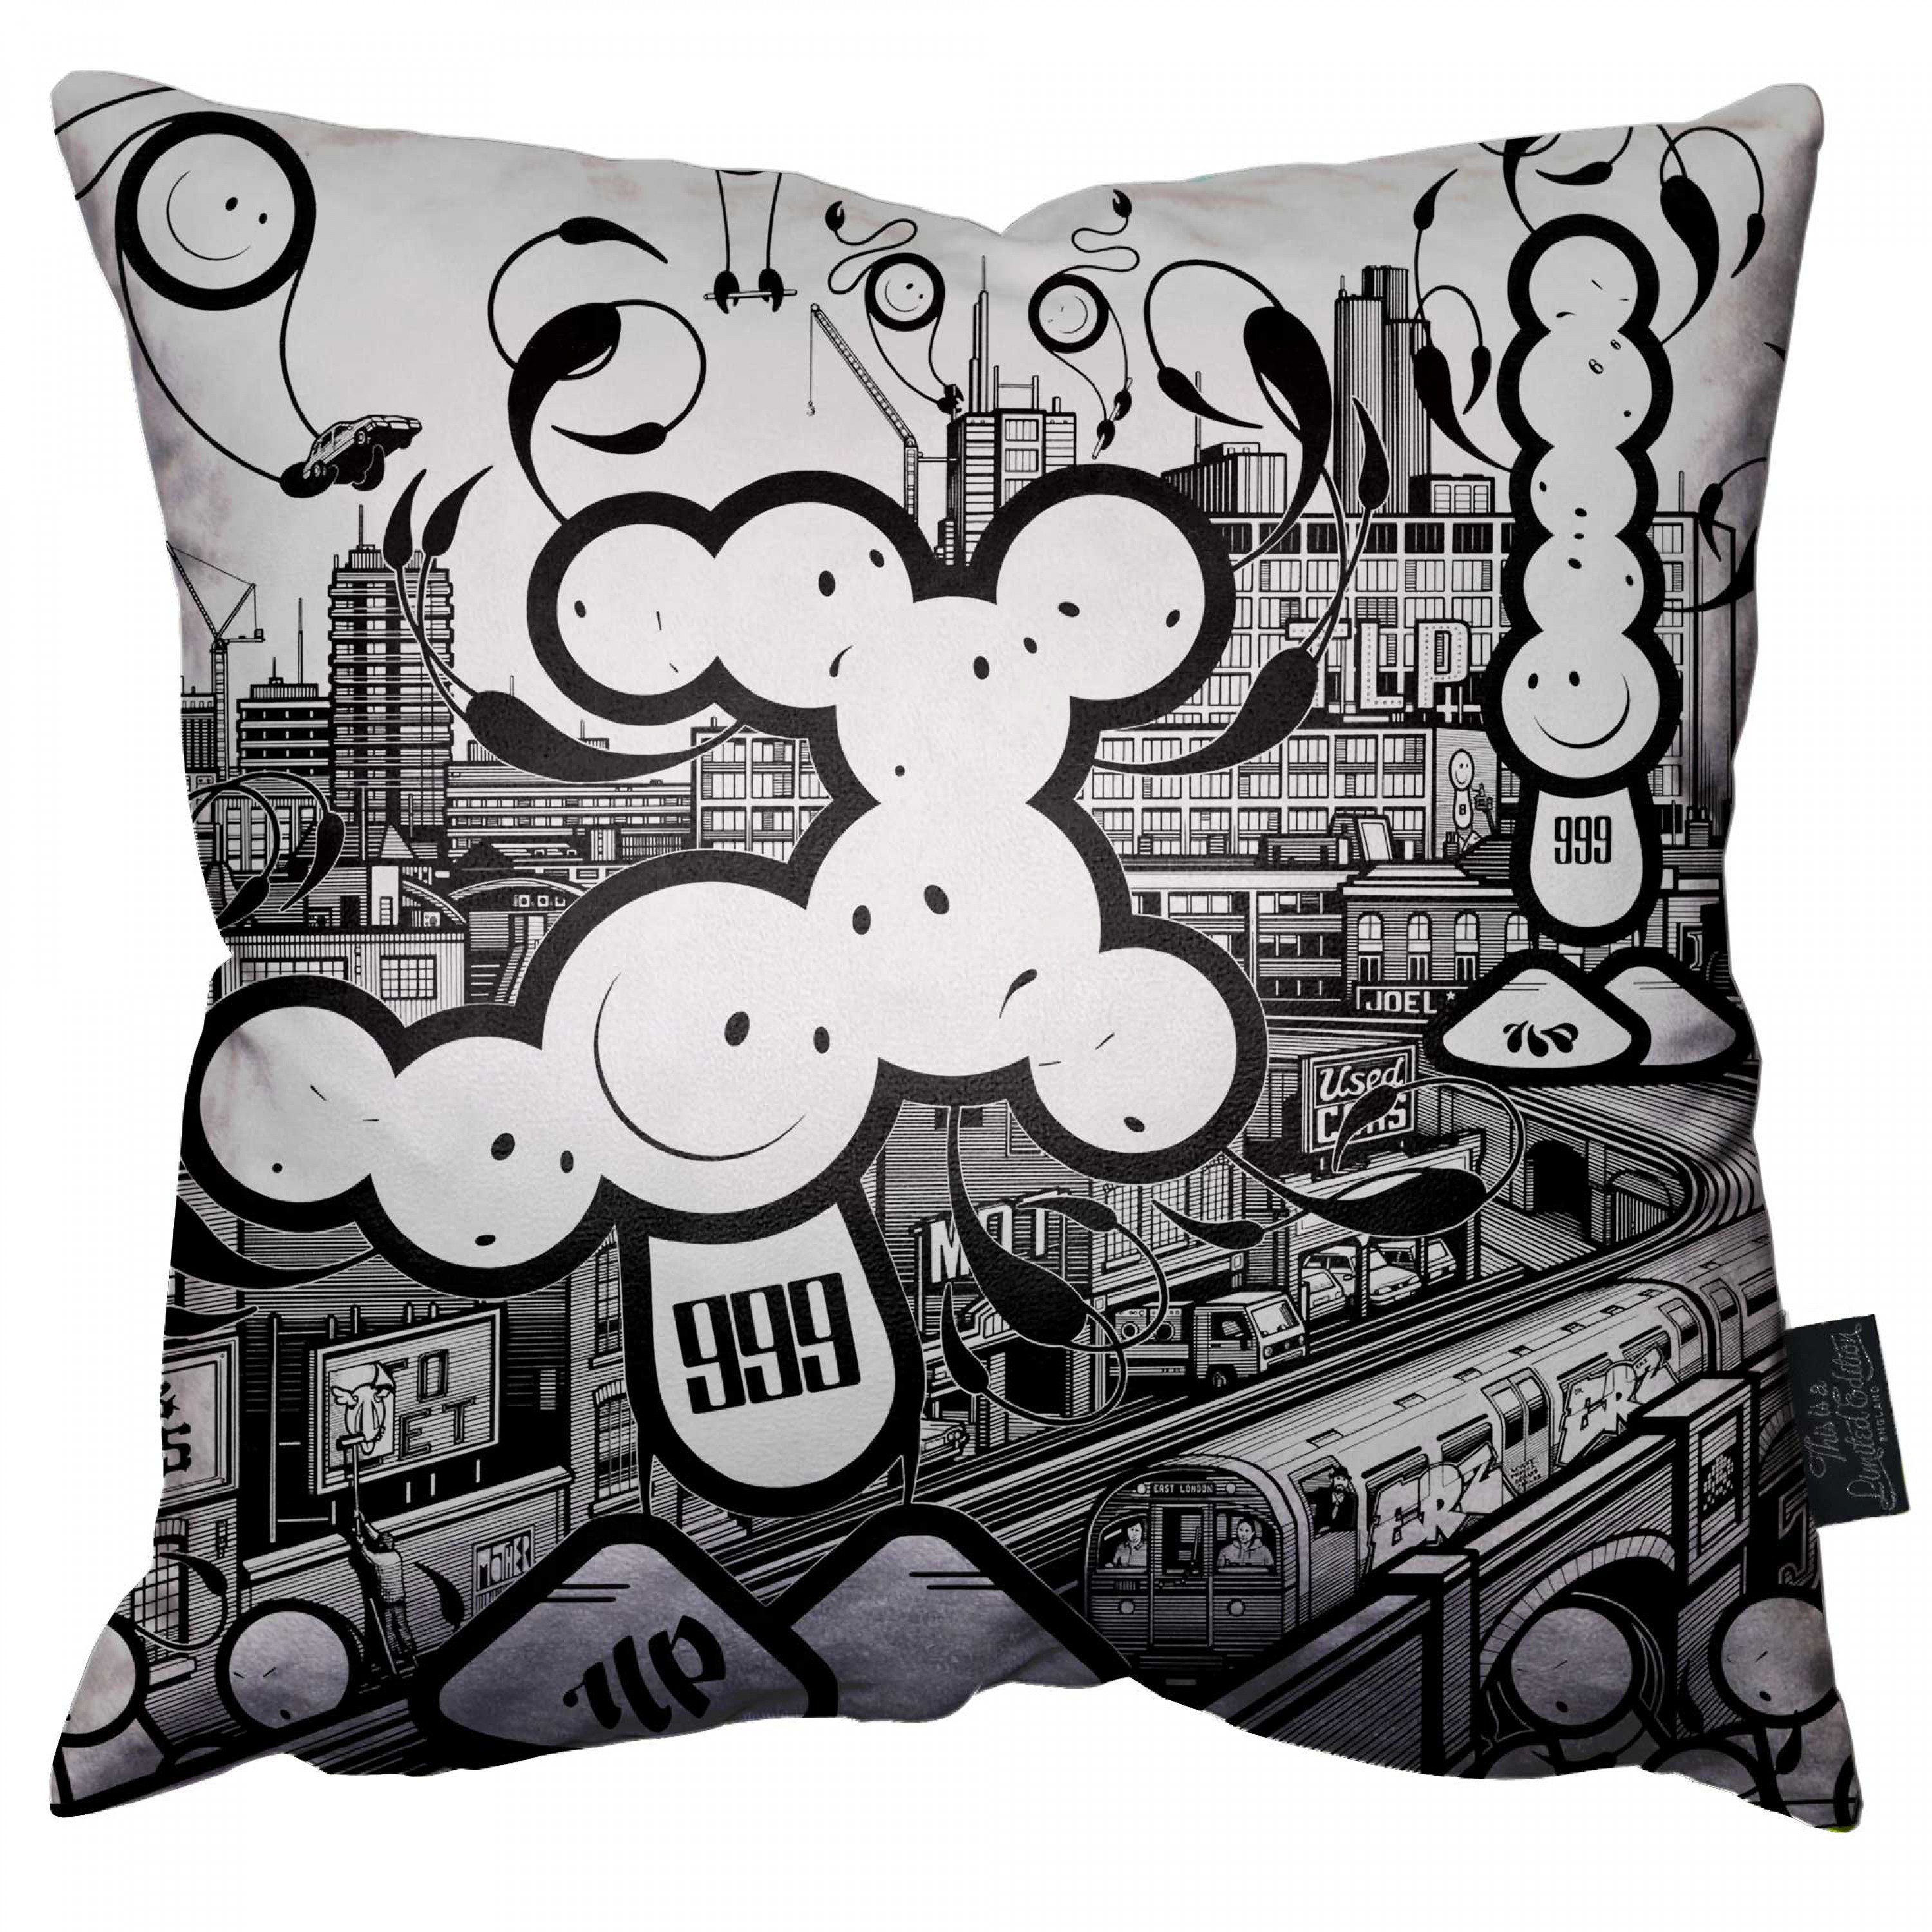 East London Pillow